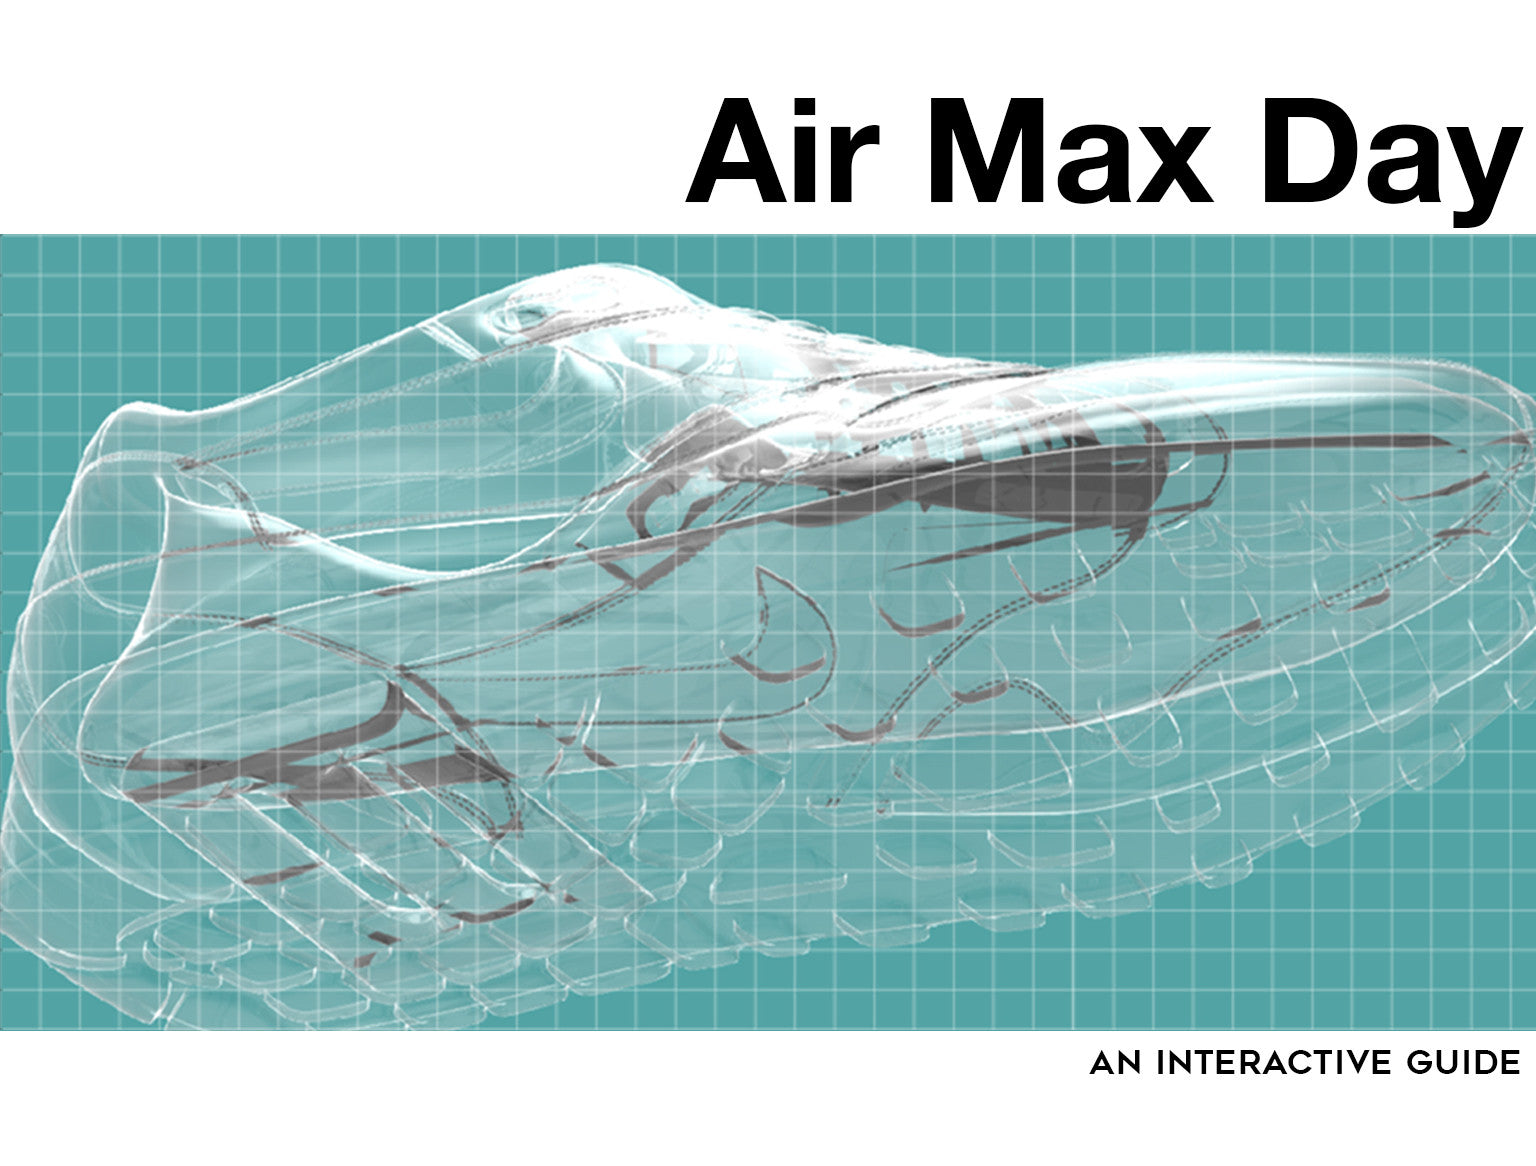 Air Max Day: The Interactive Guide